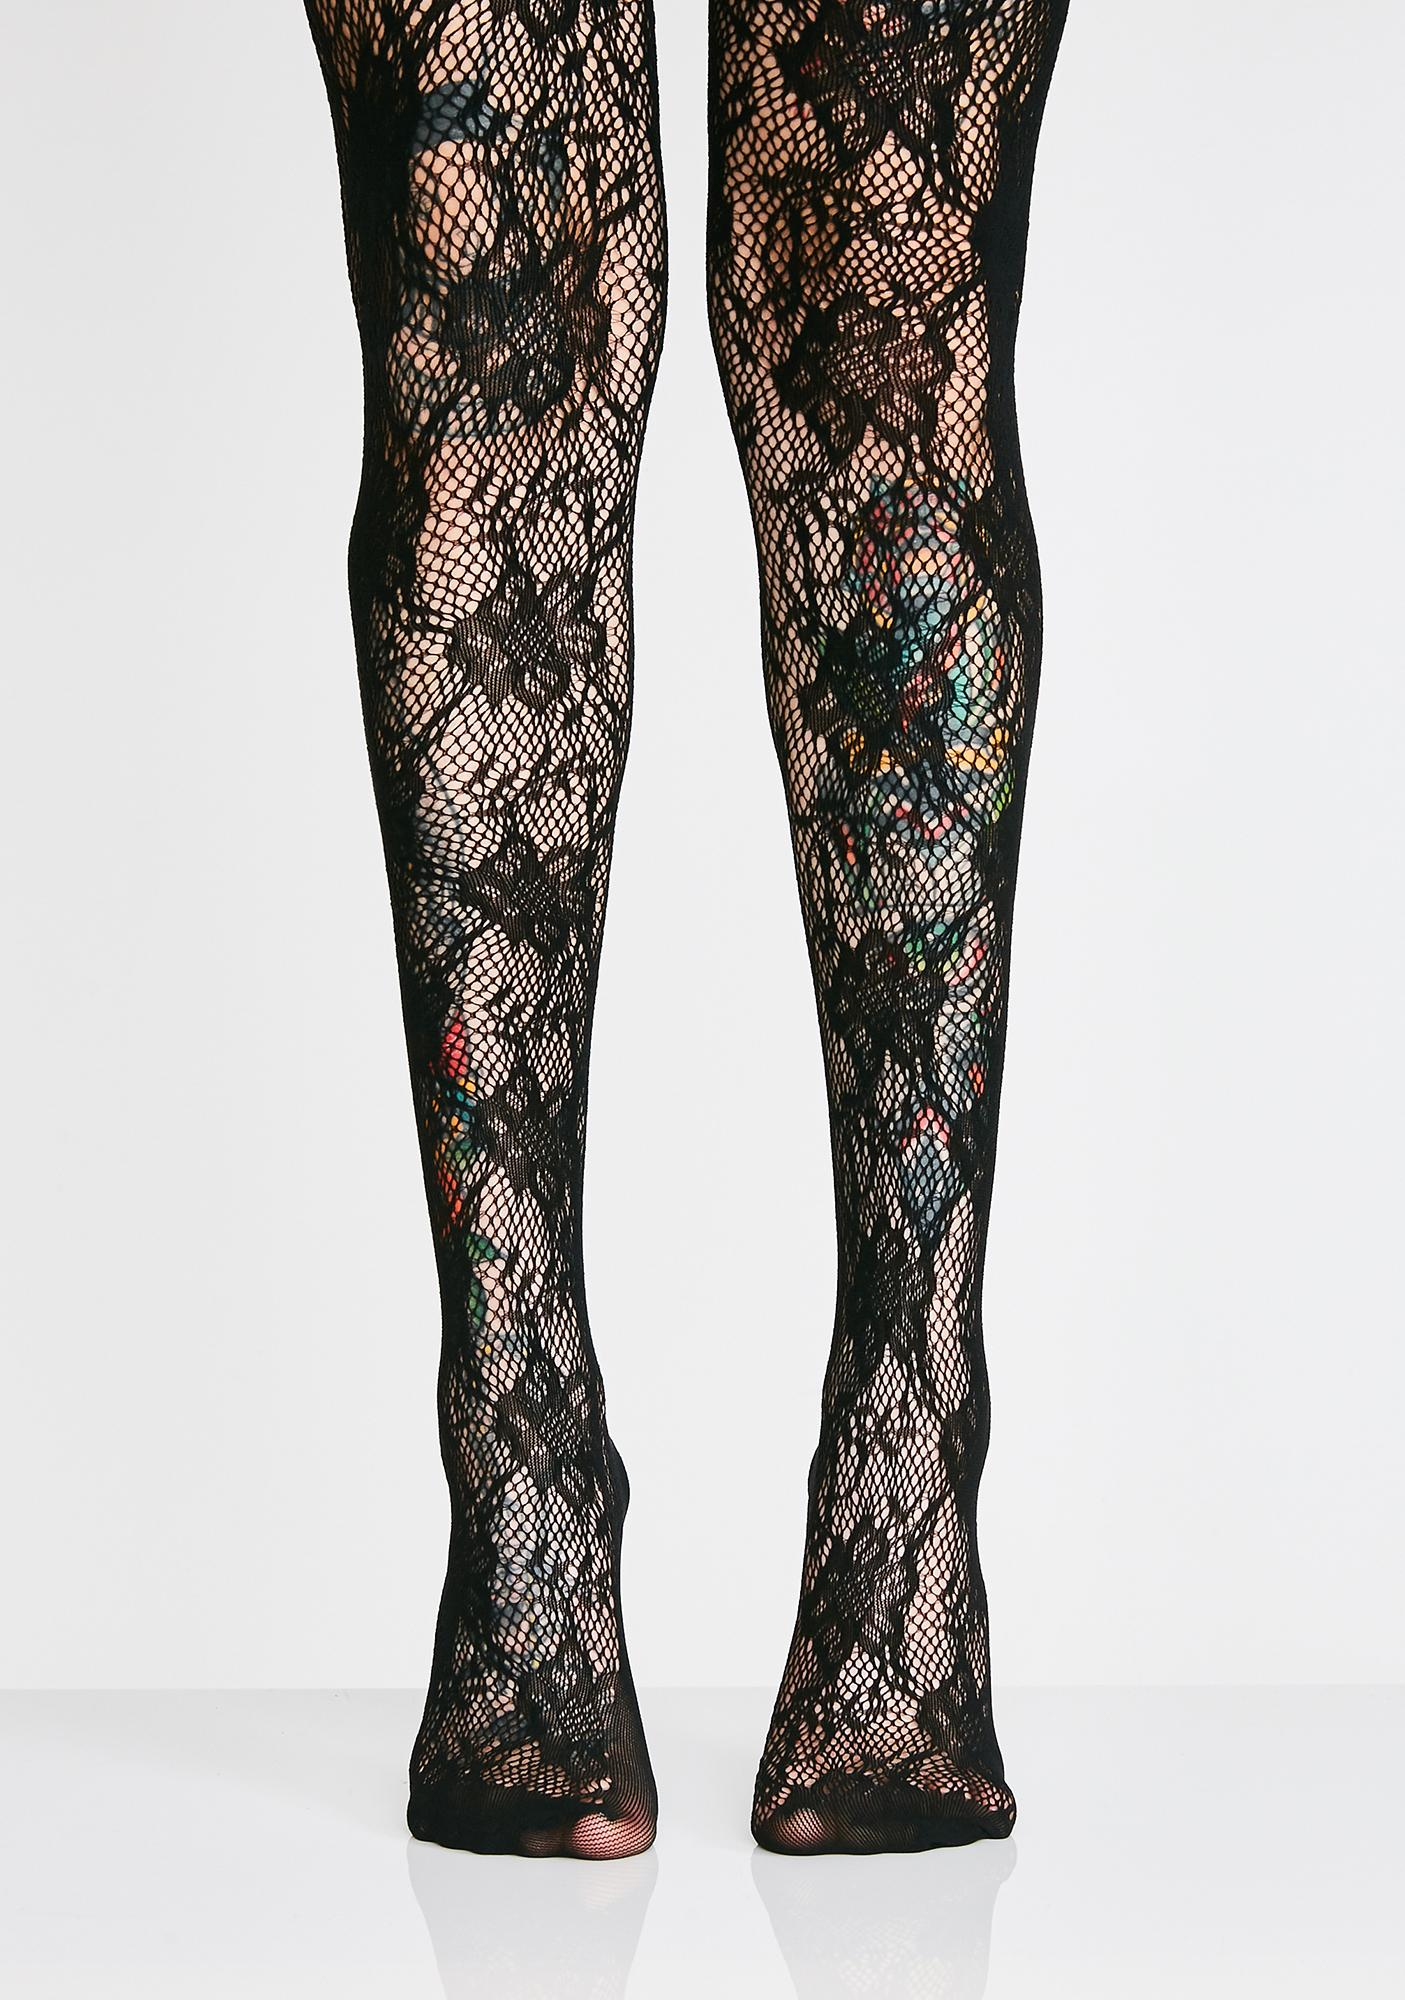 9c9fcc81b44dce Baby Monster Lace Tights; Baby Monster Lace Tights ...